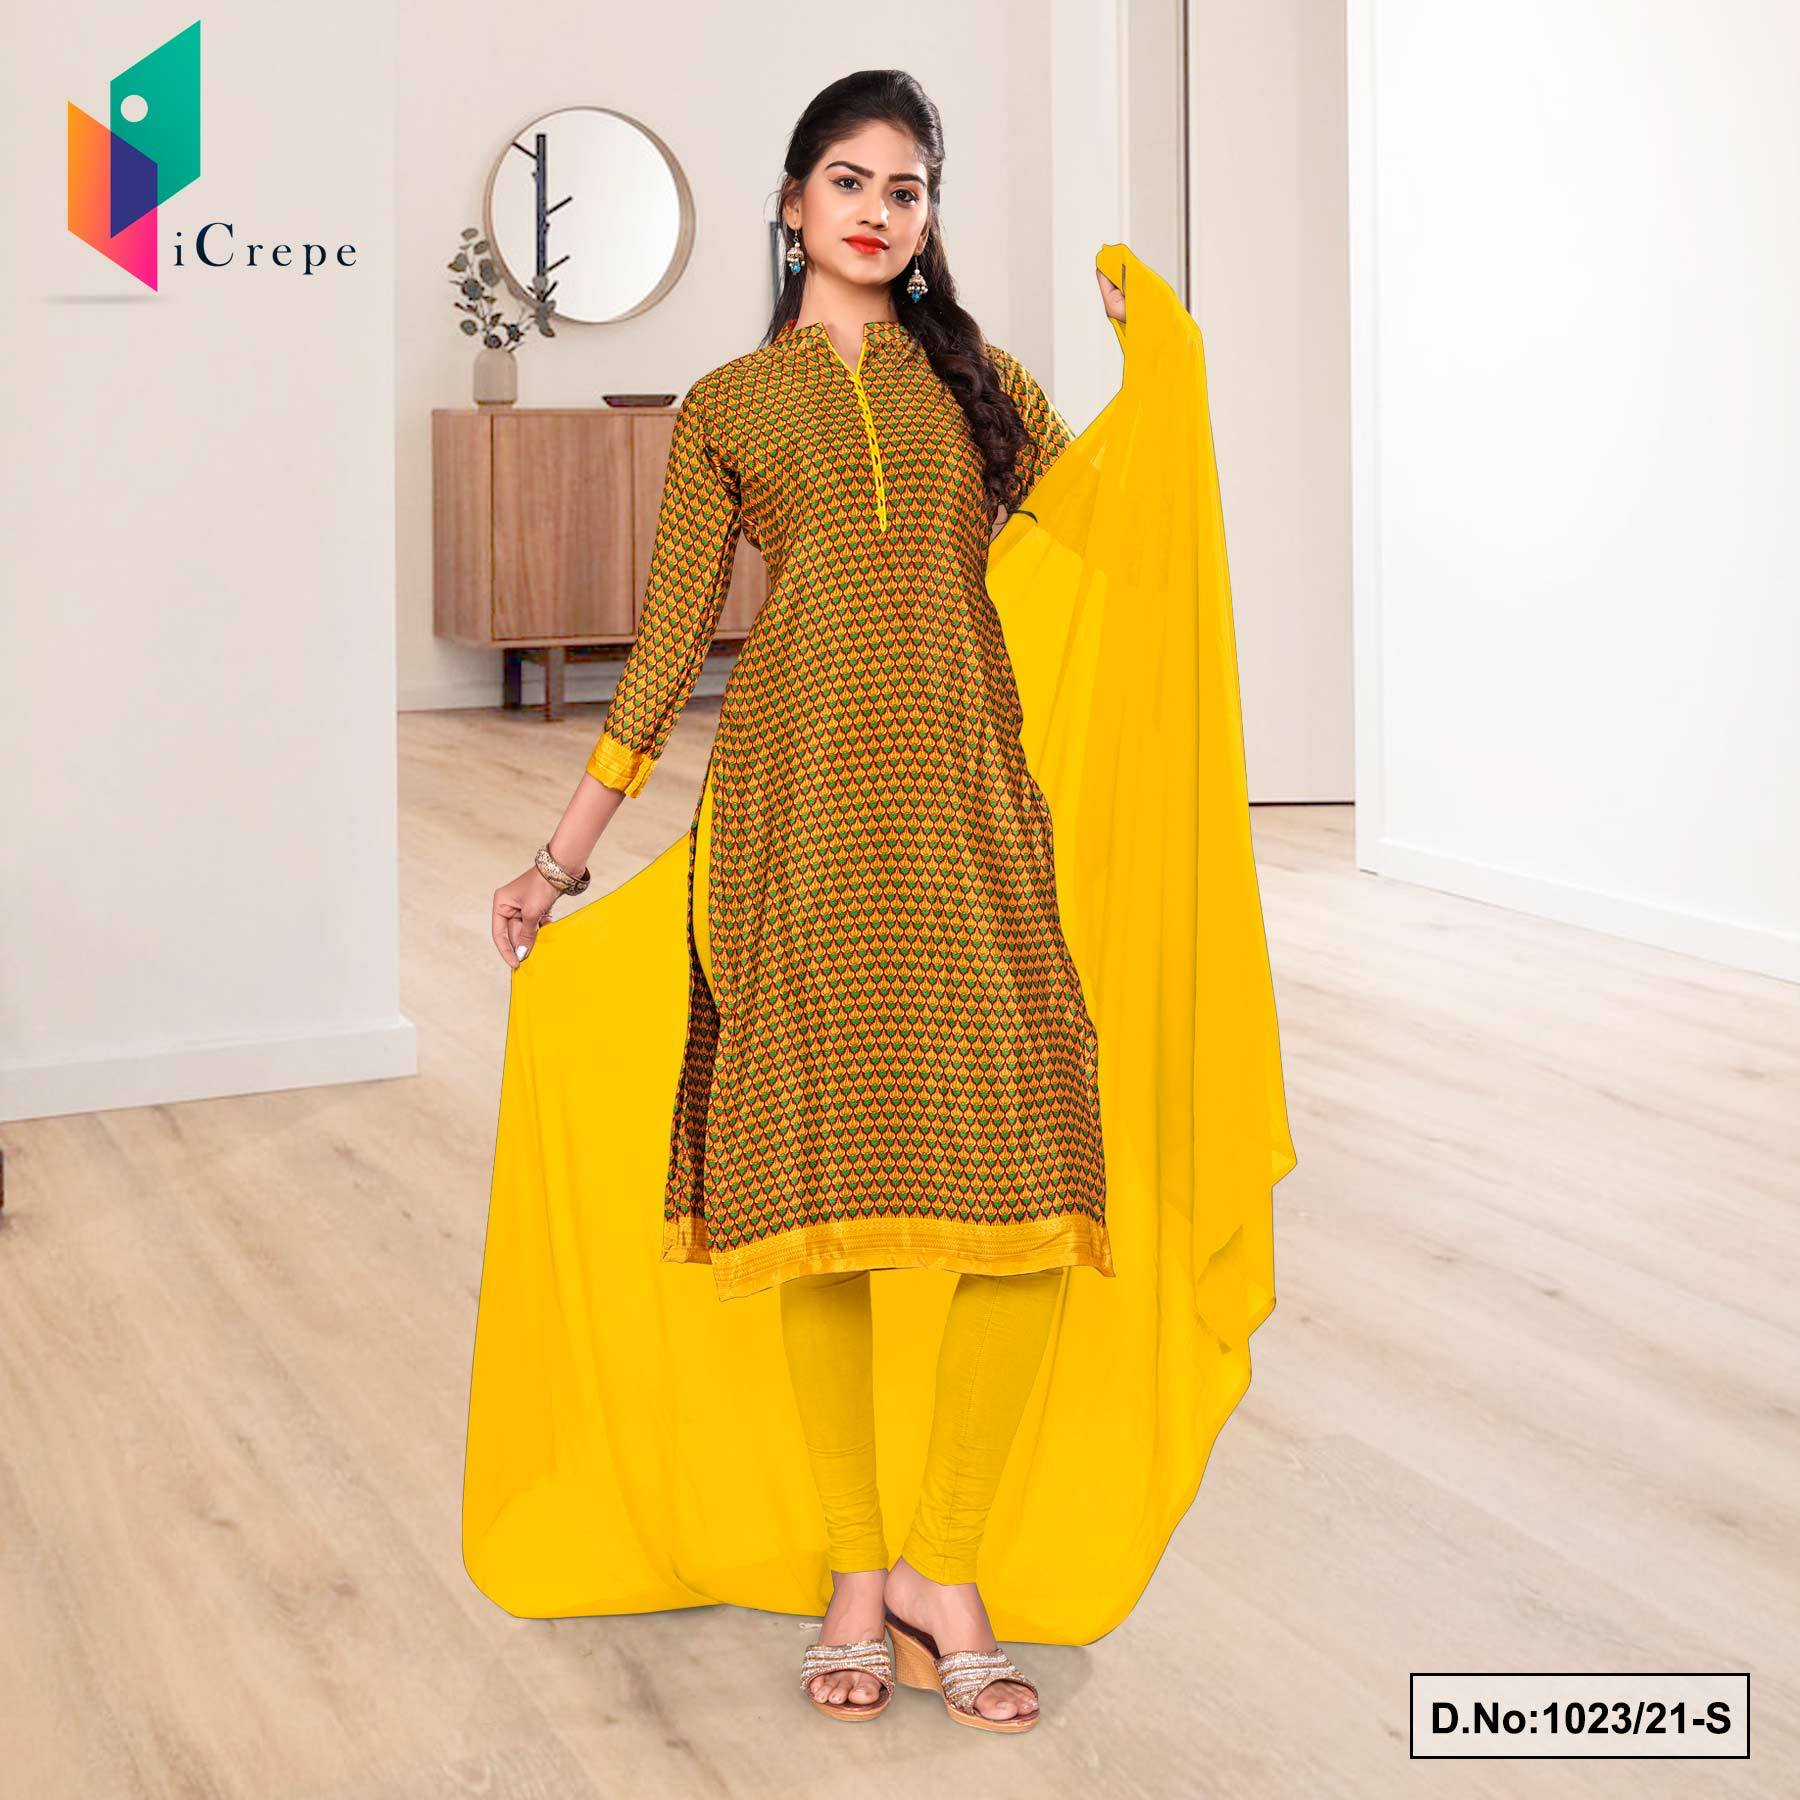 Gold Yellow Small Print Premium Italian Silk Crepe Chudidar for Institution Uniform Sarees